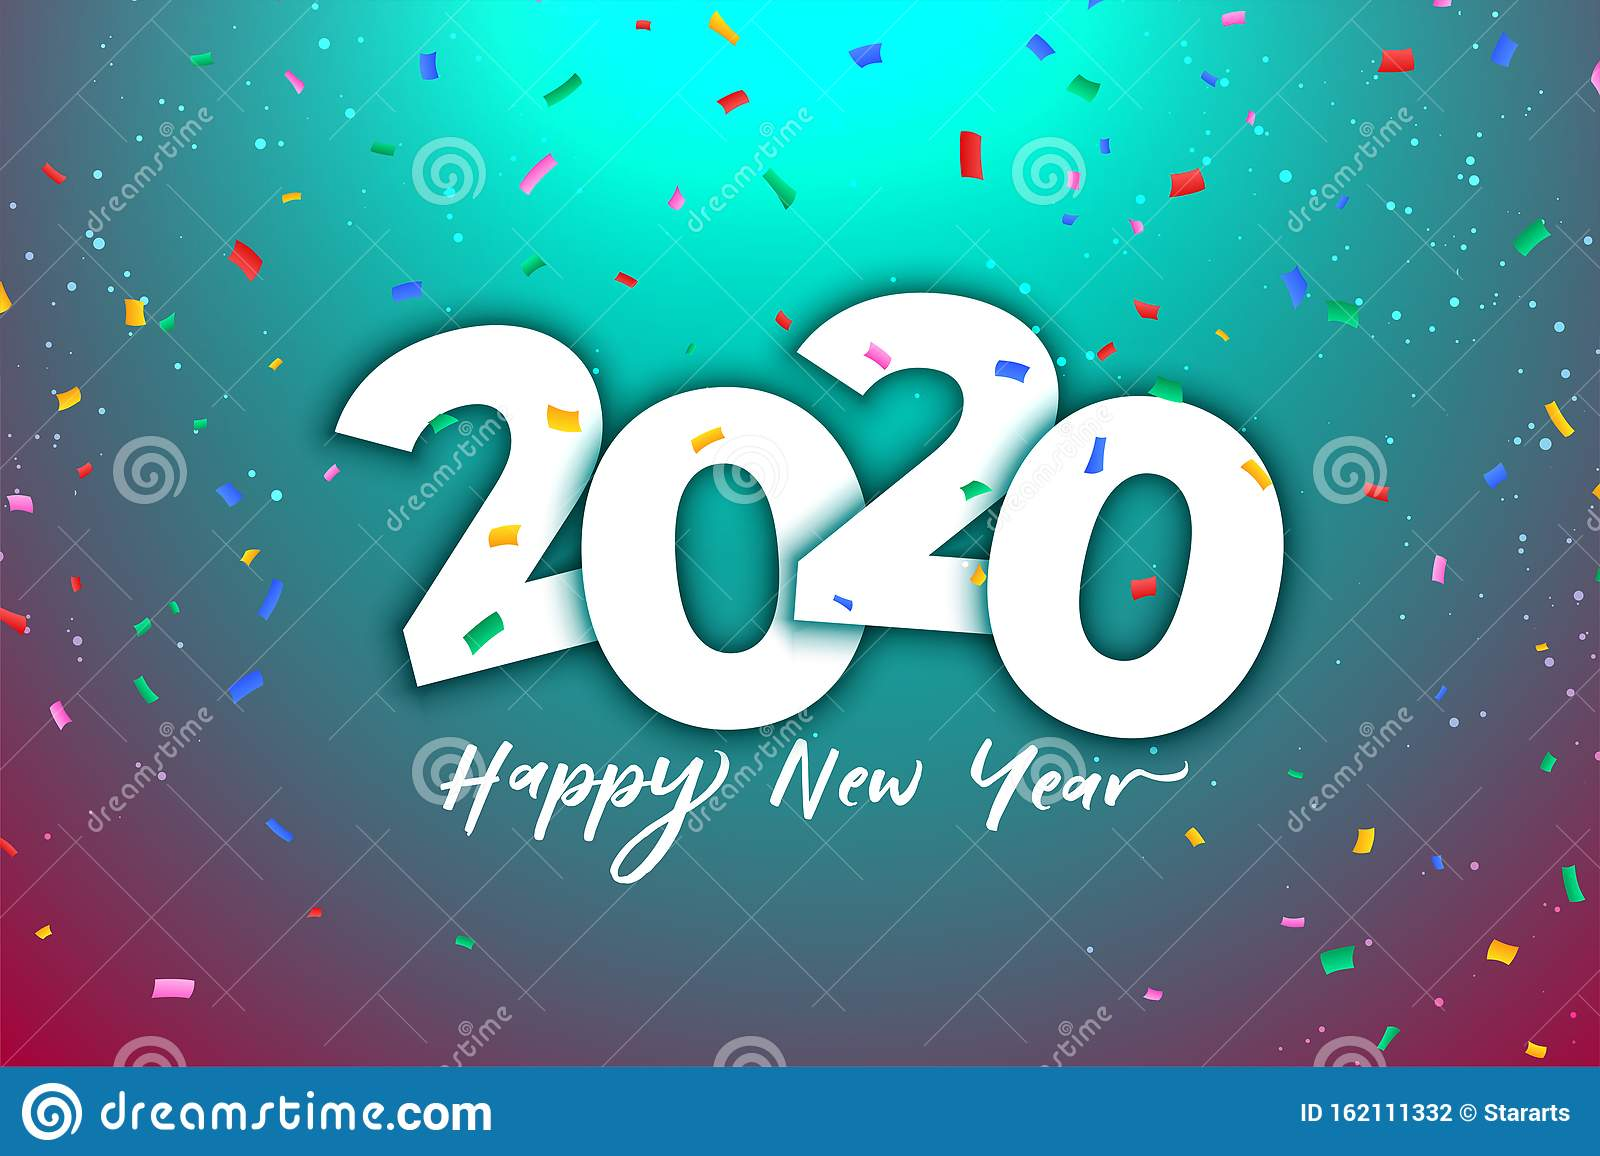 2020 new year celebration background with colorful confetti